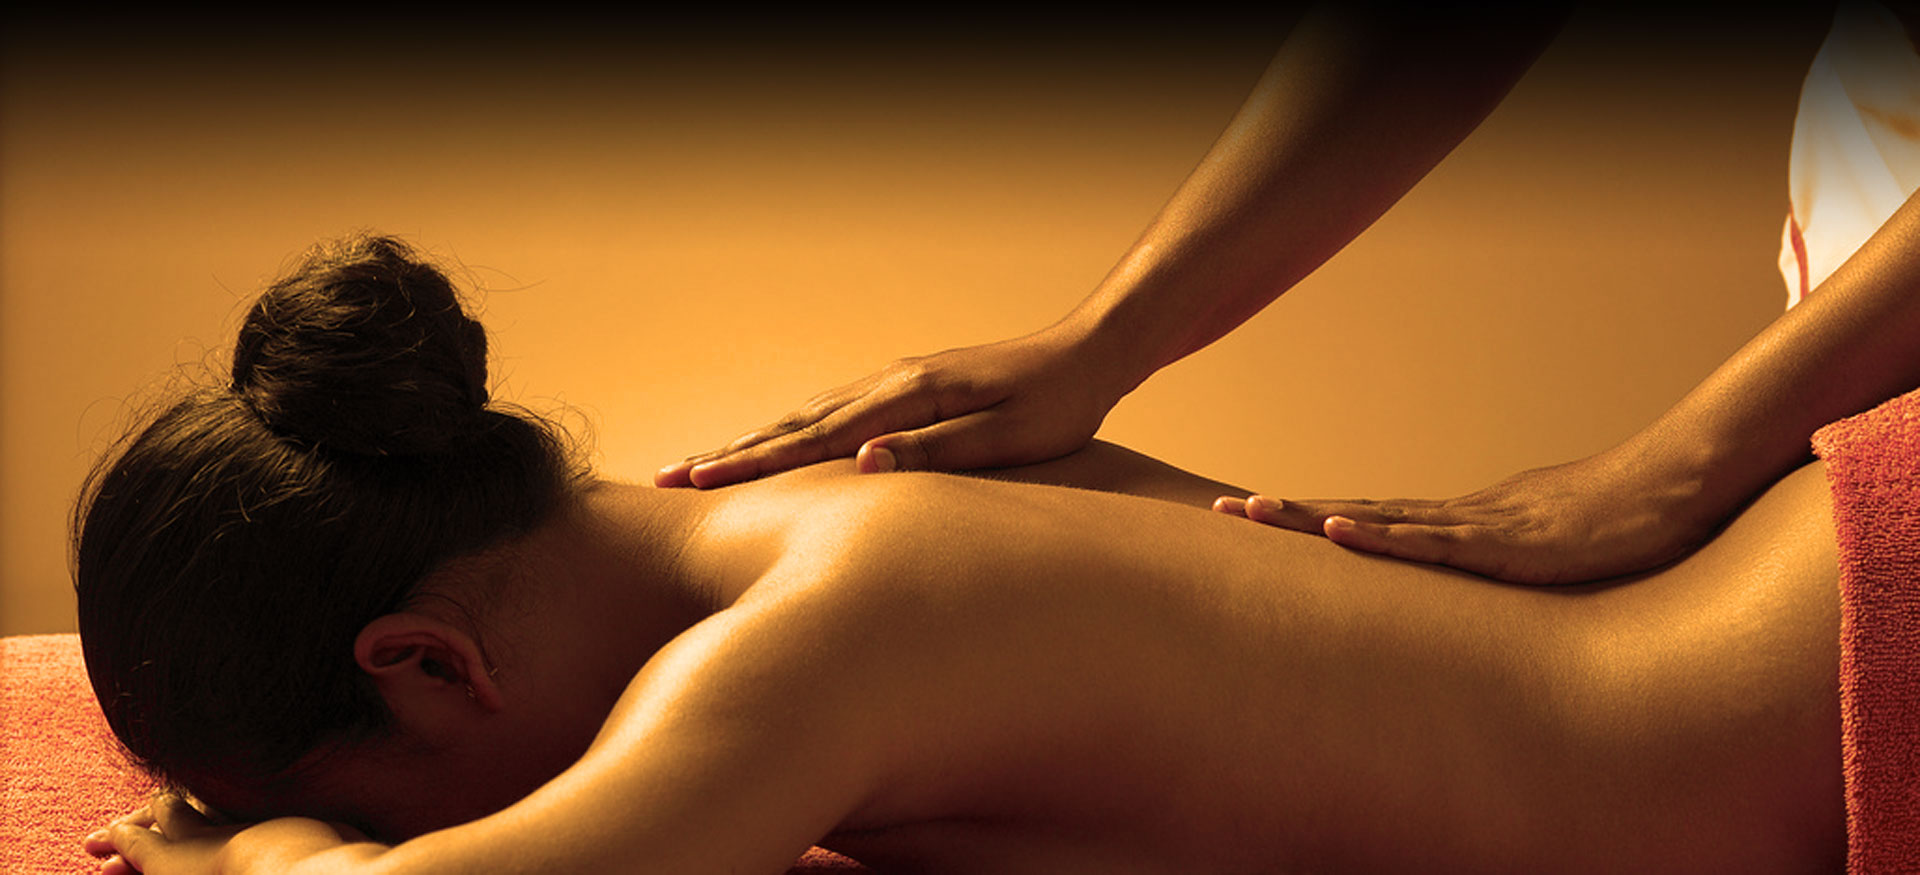 sex med sin mor thai massage herning